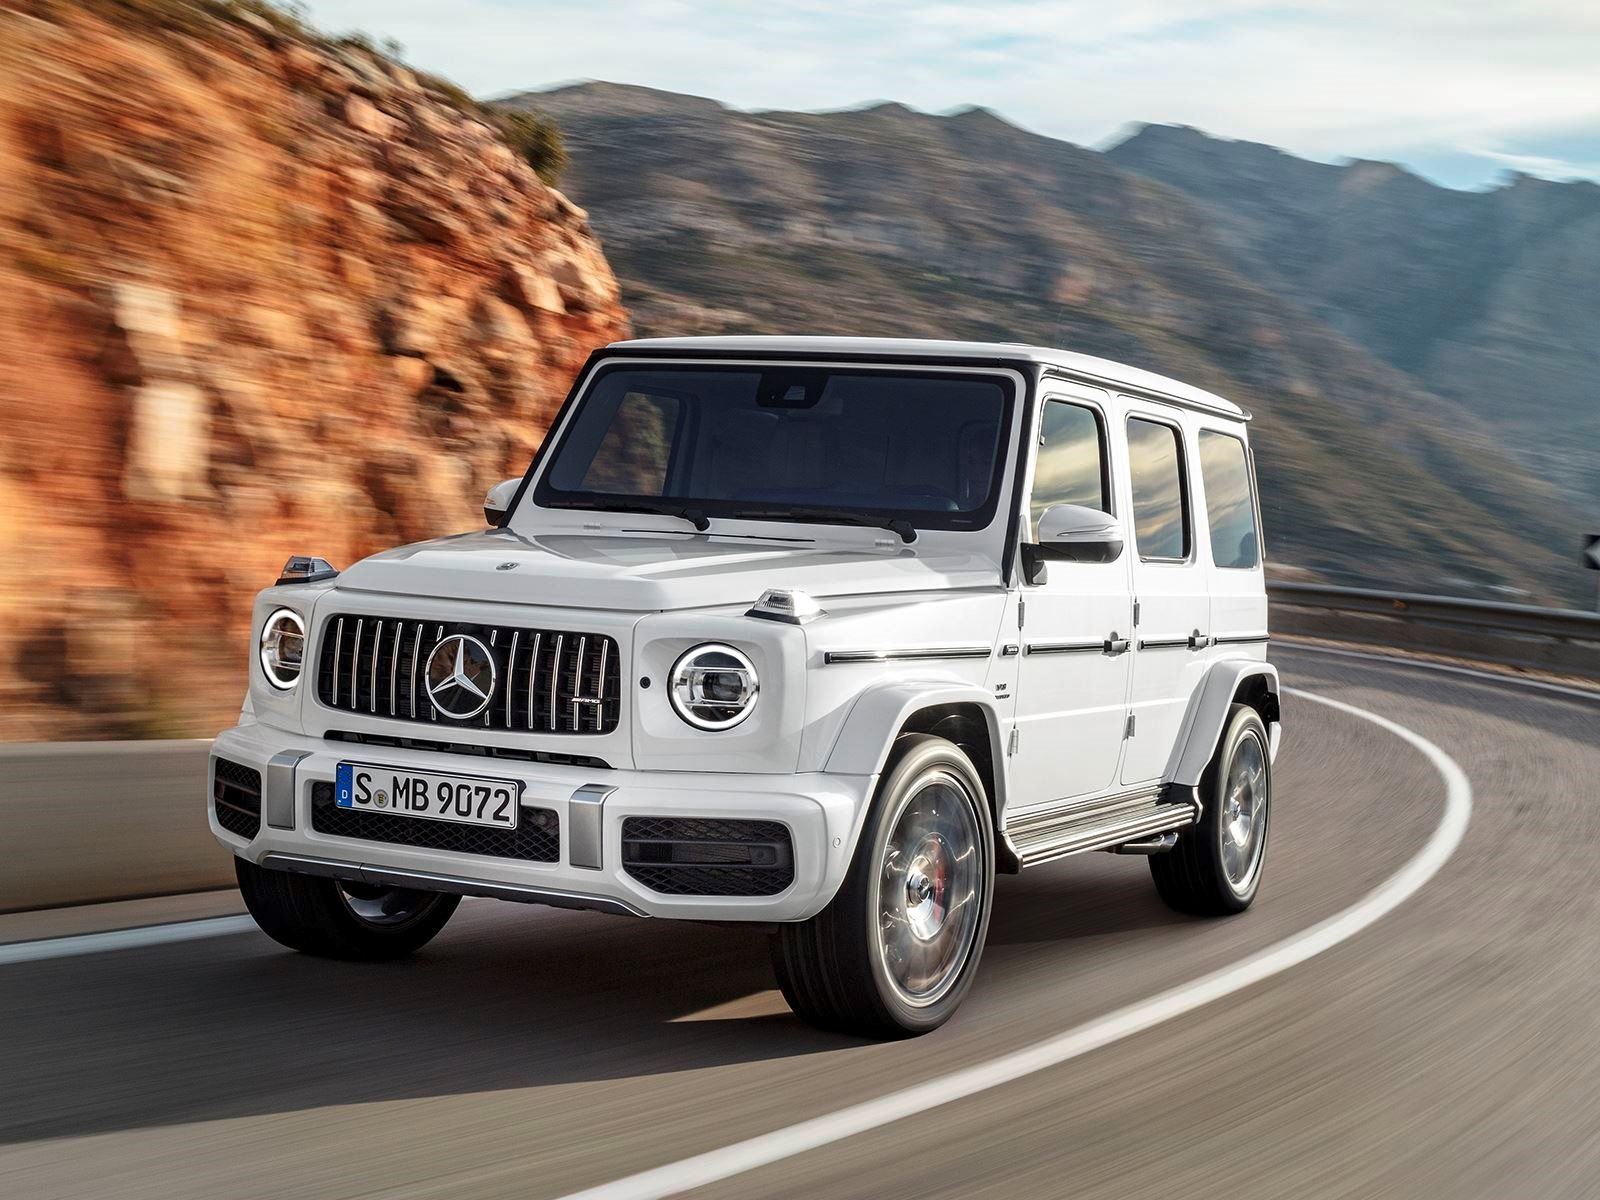 new mercedes-maybach g-class could shake up the luxury suv segment